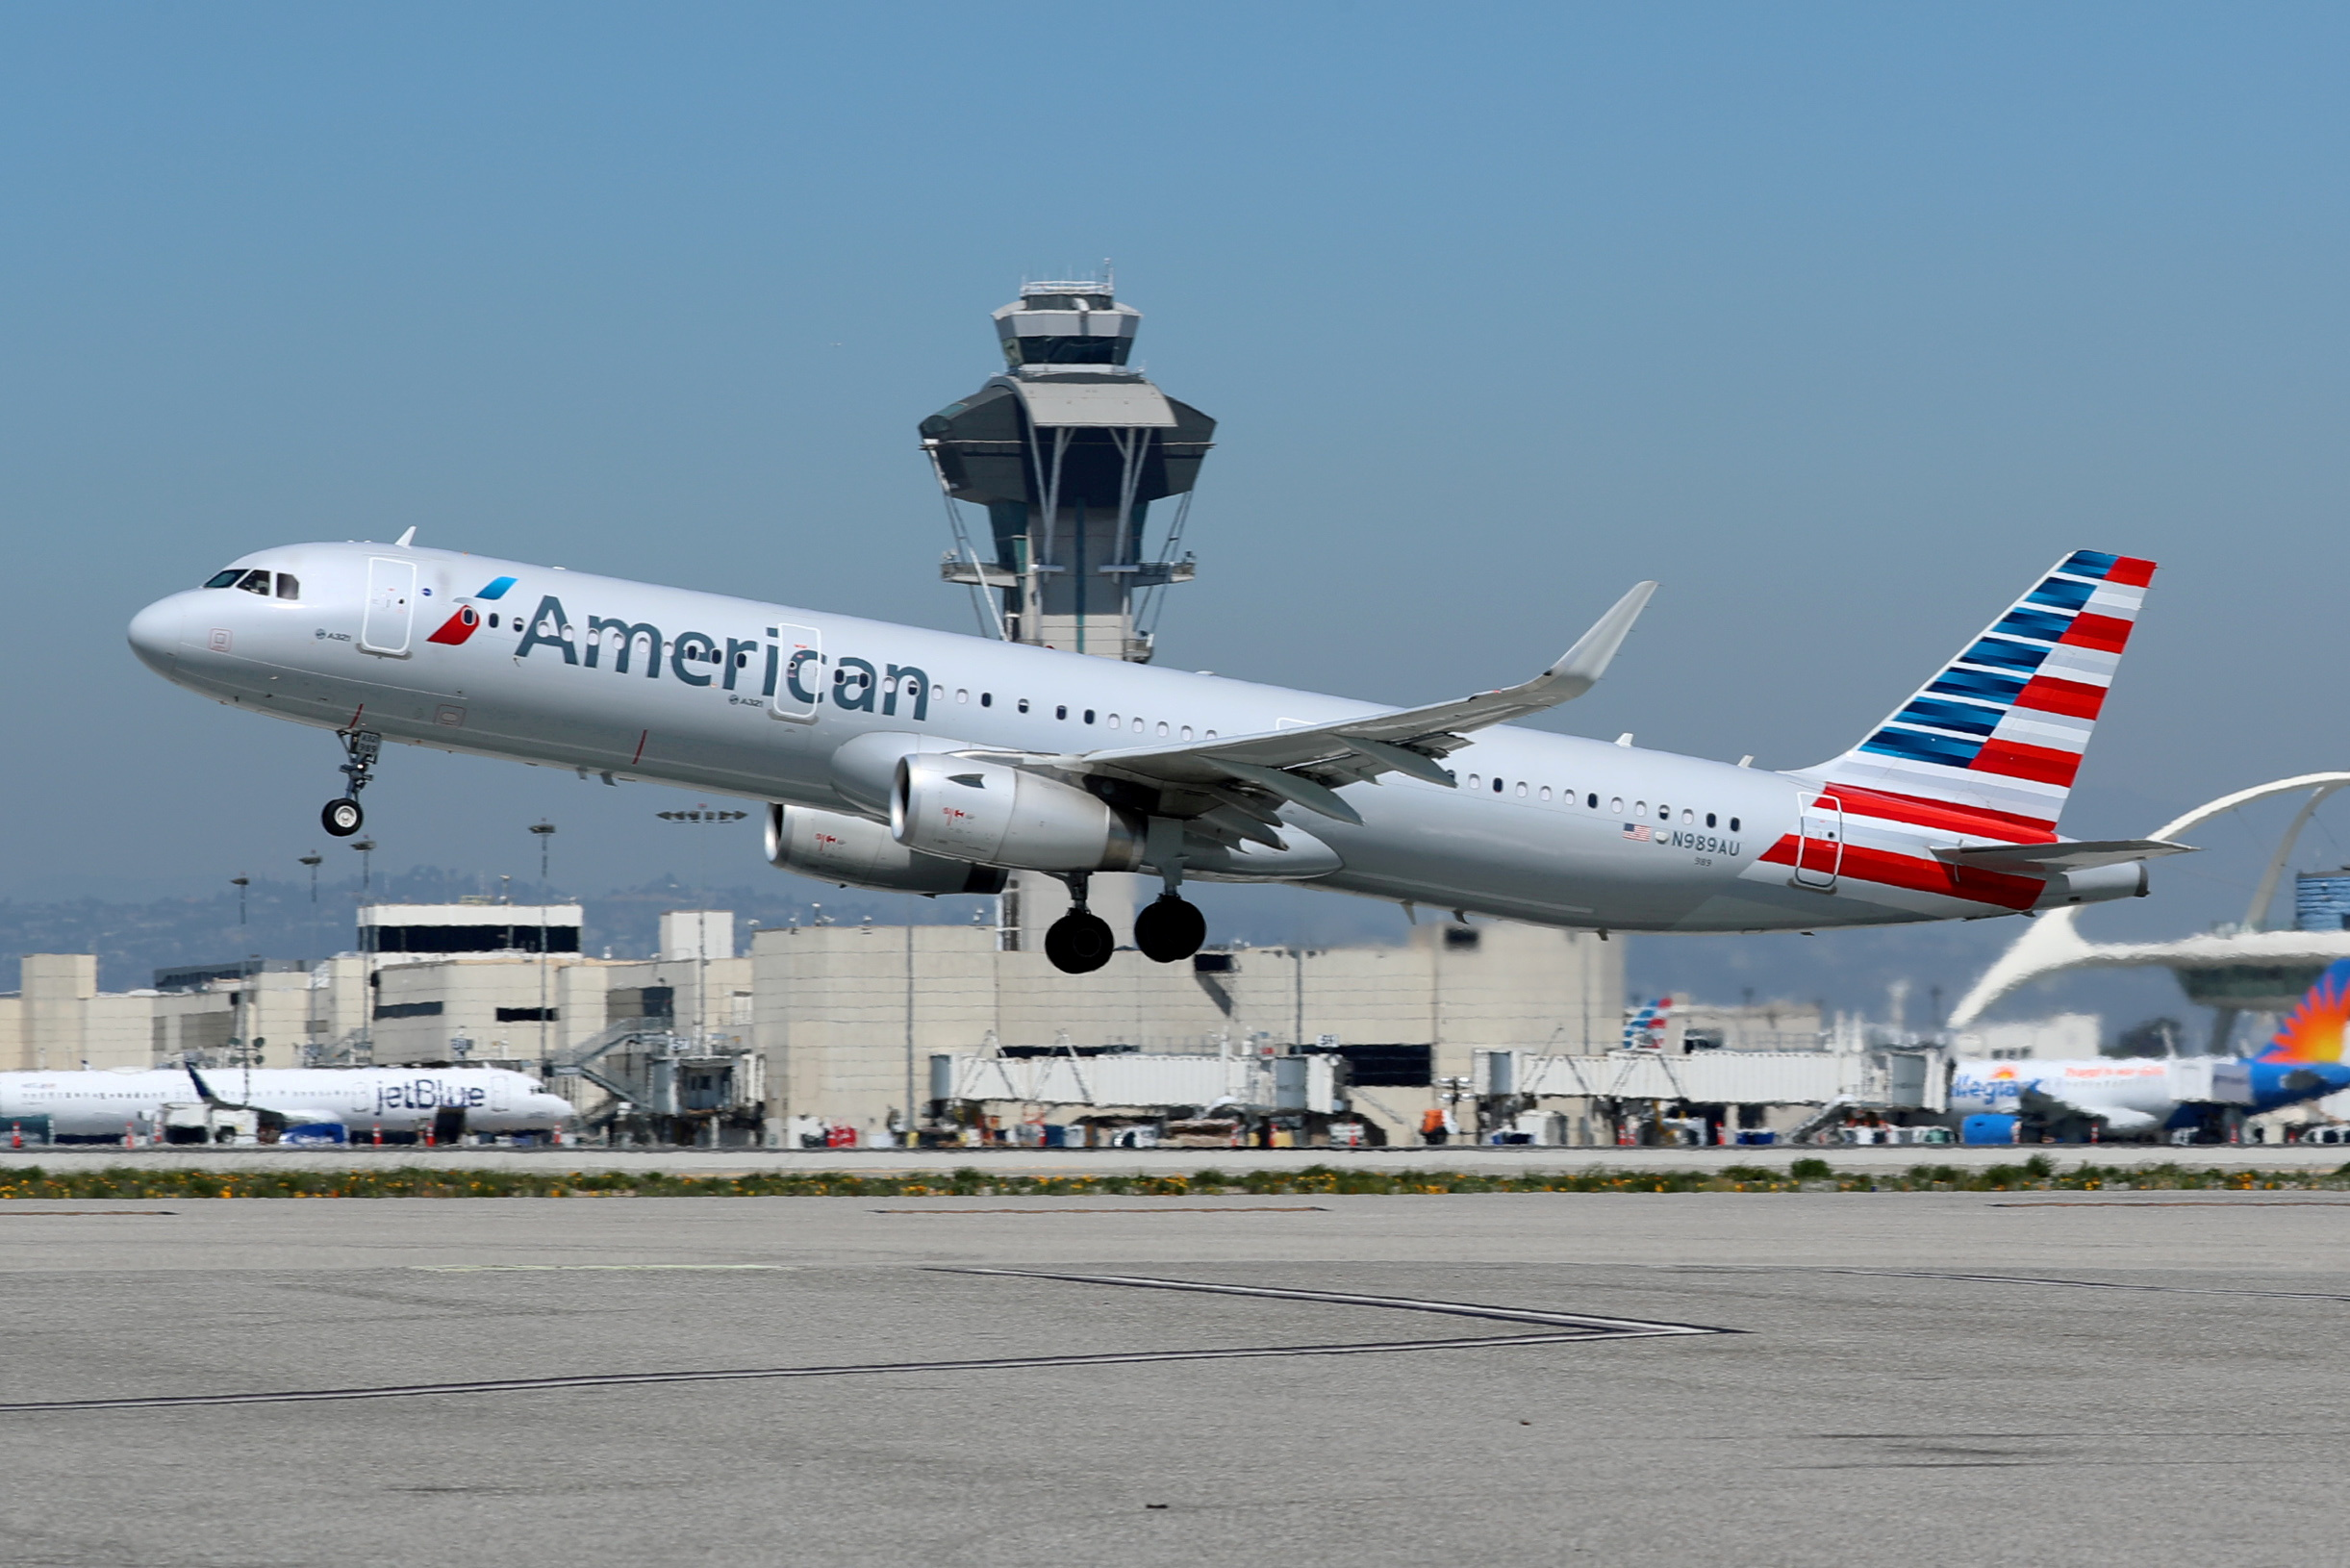 An American Airlines Airbus A321-200 plane takes off from Los Angeles International airport (LAX) in Los Angeles, California, U.S. March 28, 2018. REUTERS/Mike Blake